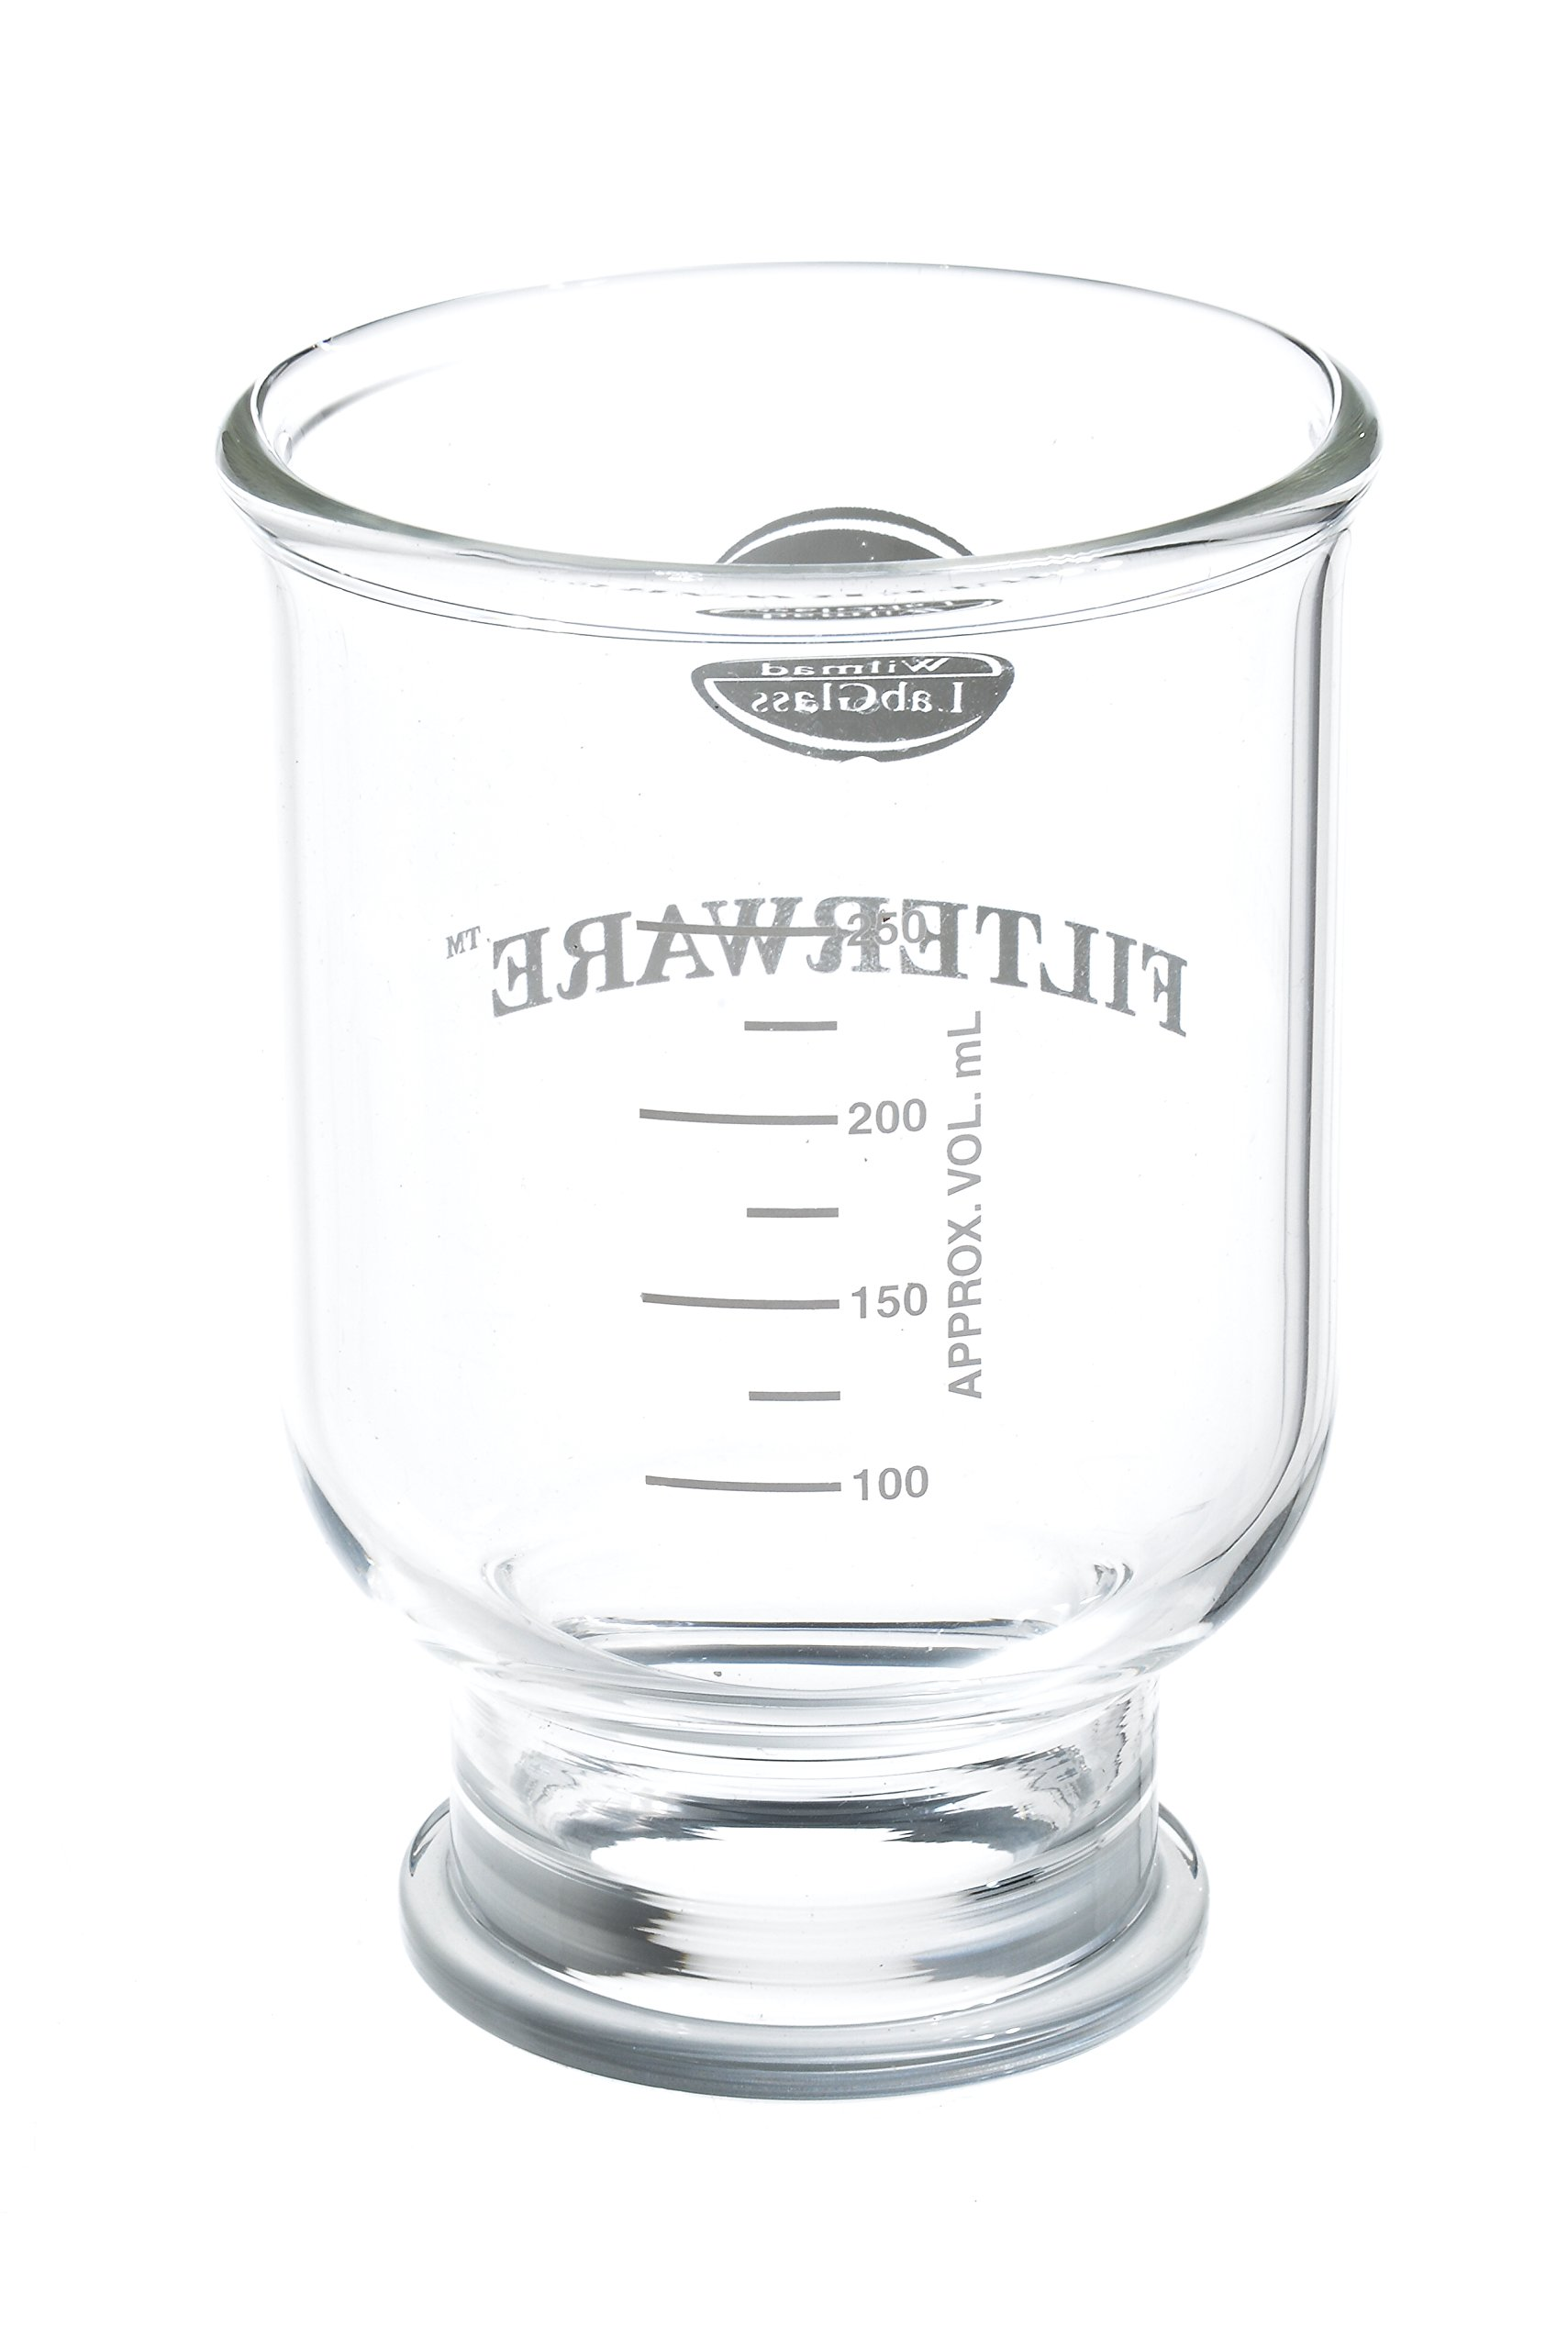 Wilmad-LabGlass BP-1751-000 FILTERWARE Graduated Funnel for 47mm Filter Apparatus, 300mL